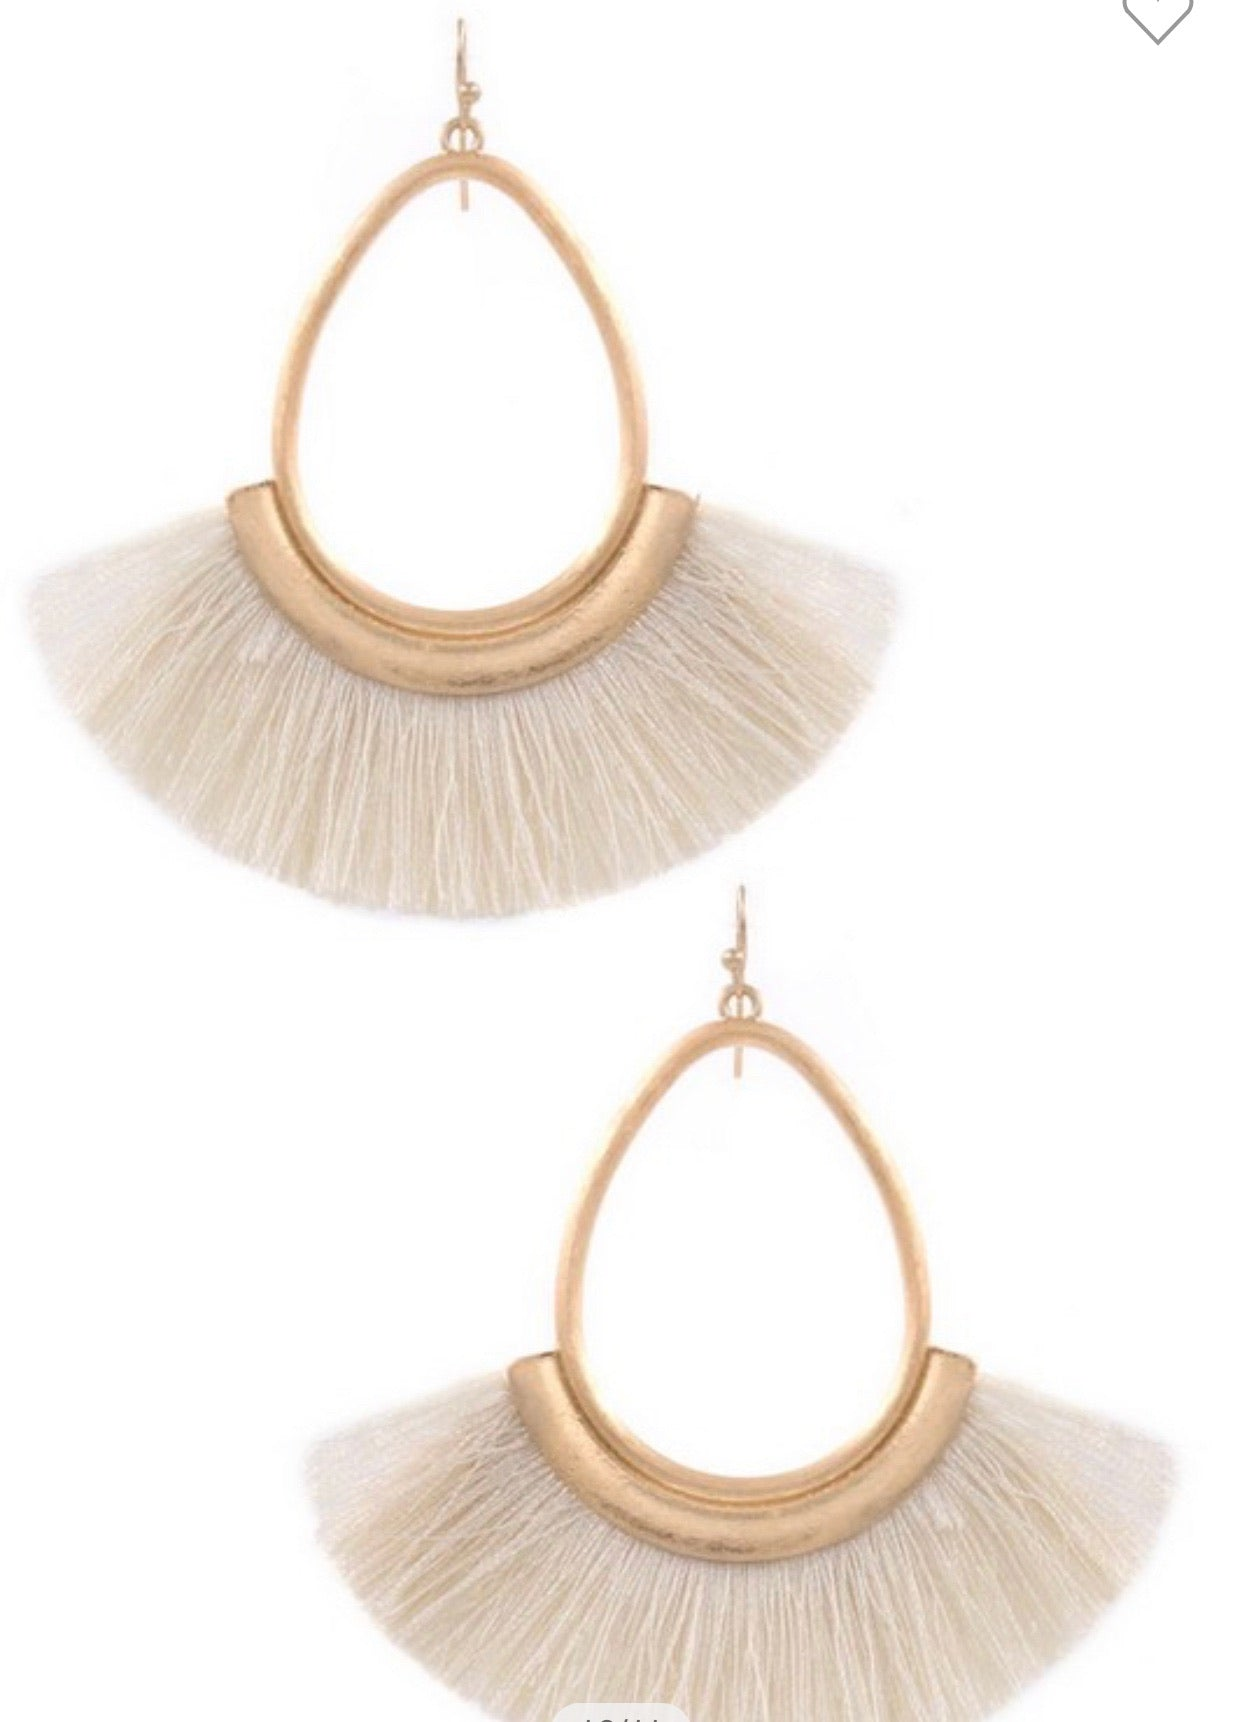 Teardrop Cotton Fringe Earrings